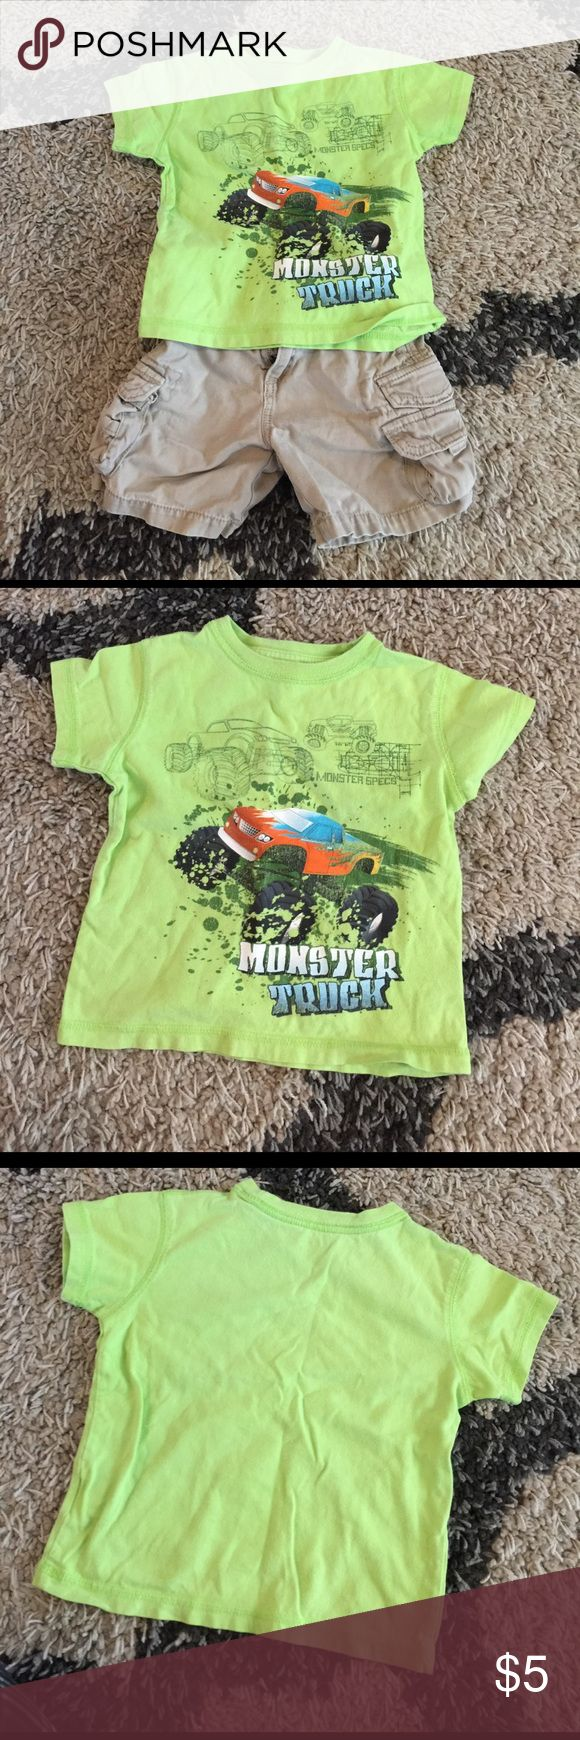 Lime green monster truck shirt Lime green shirt with monster truck. Pictured with khaki shorts, Sold separately. Bundle and save! Shirts & Tops Tees - Short Sleeve